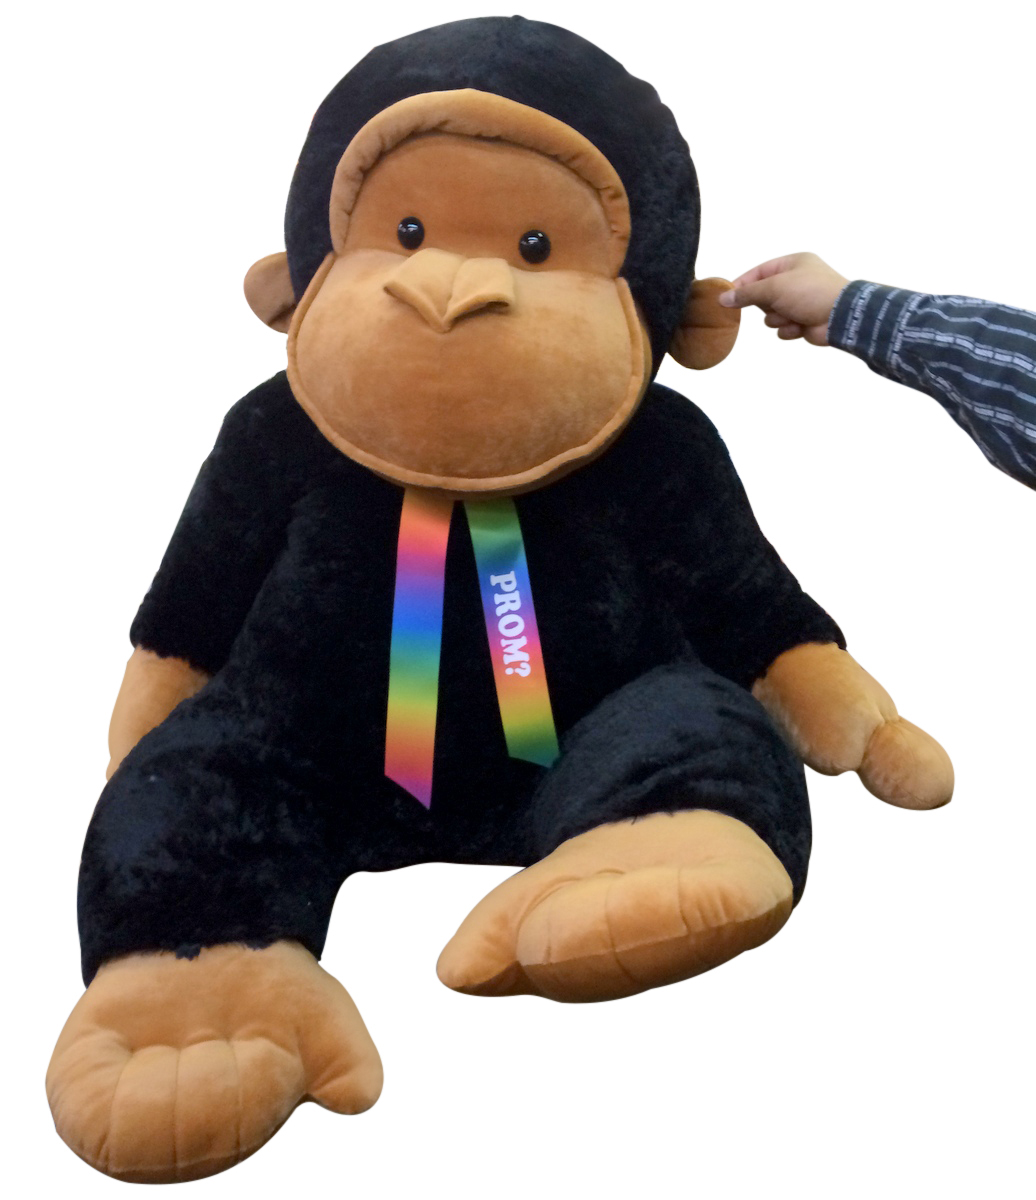 Free neck-ribbon personalization of every stuffed animal at BigPlush.com